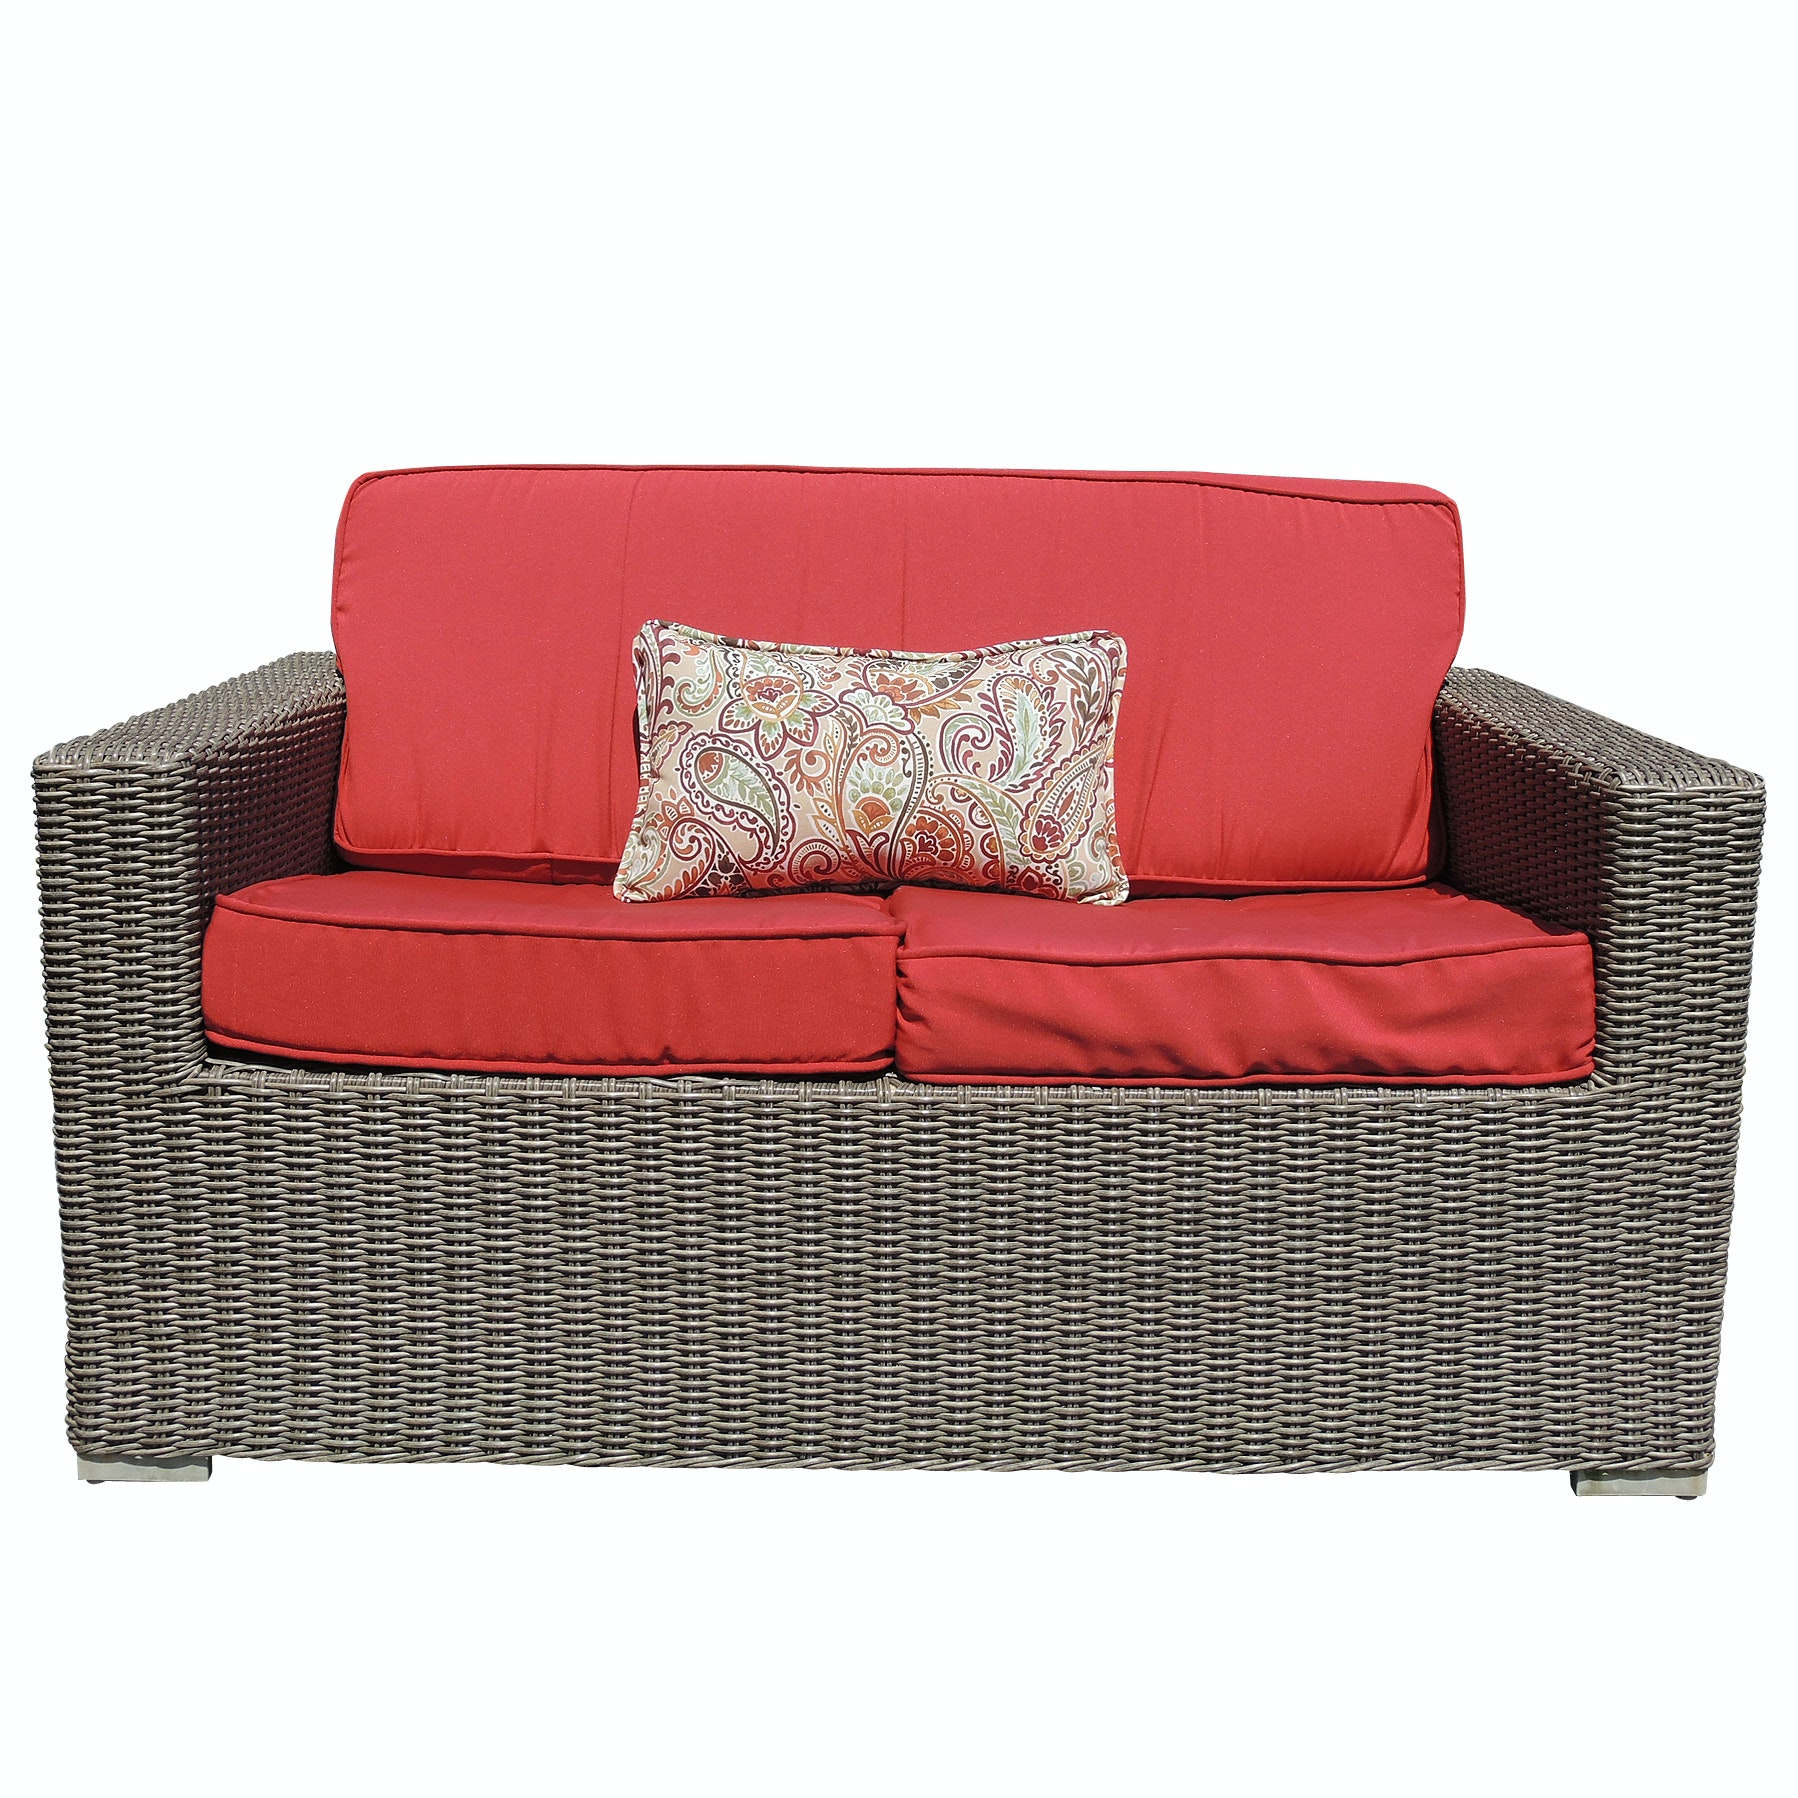 Wicker Patio Love Seat with Red Cushions